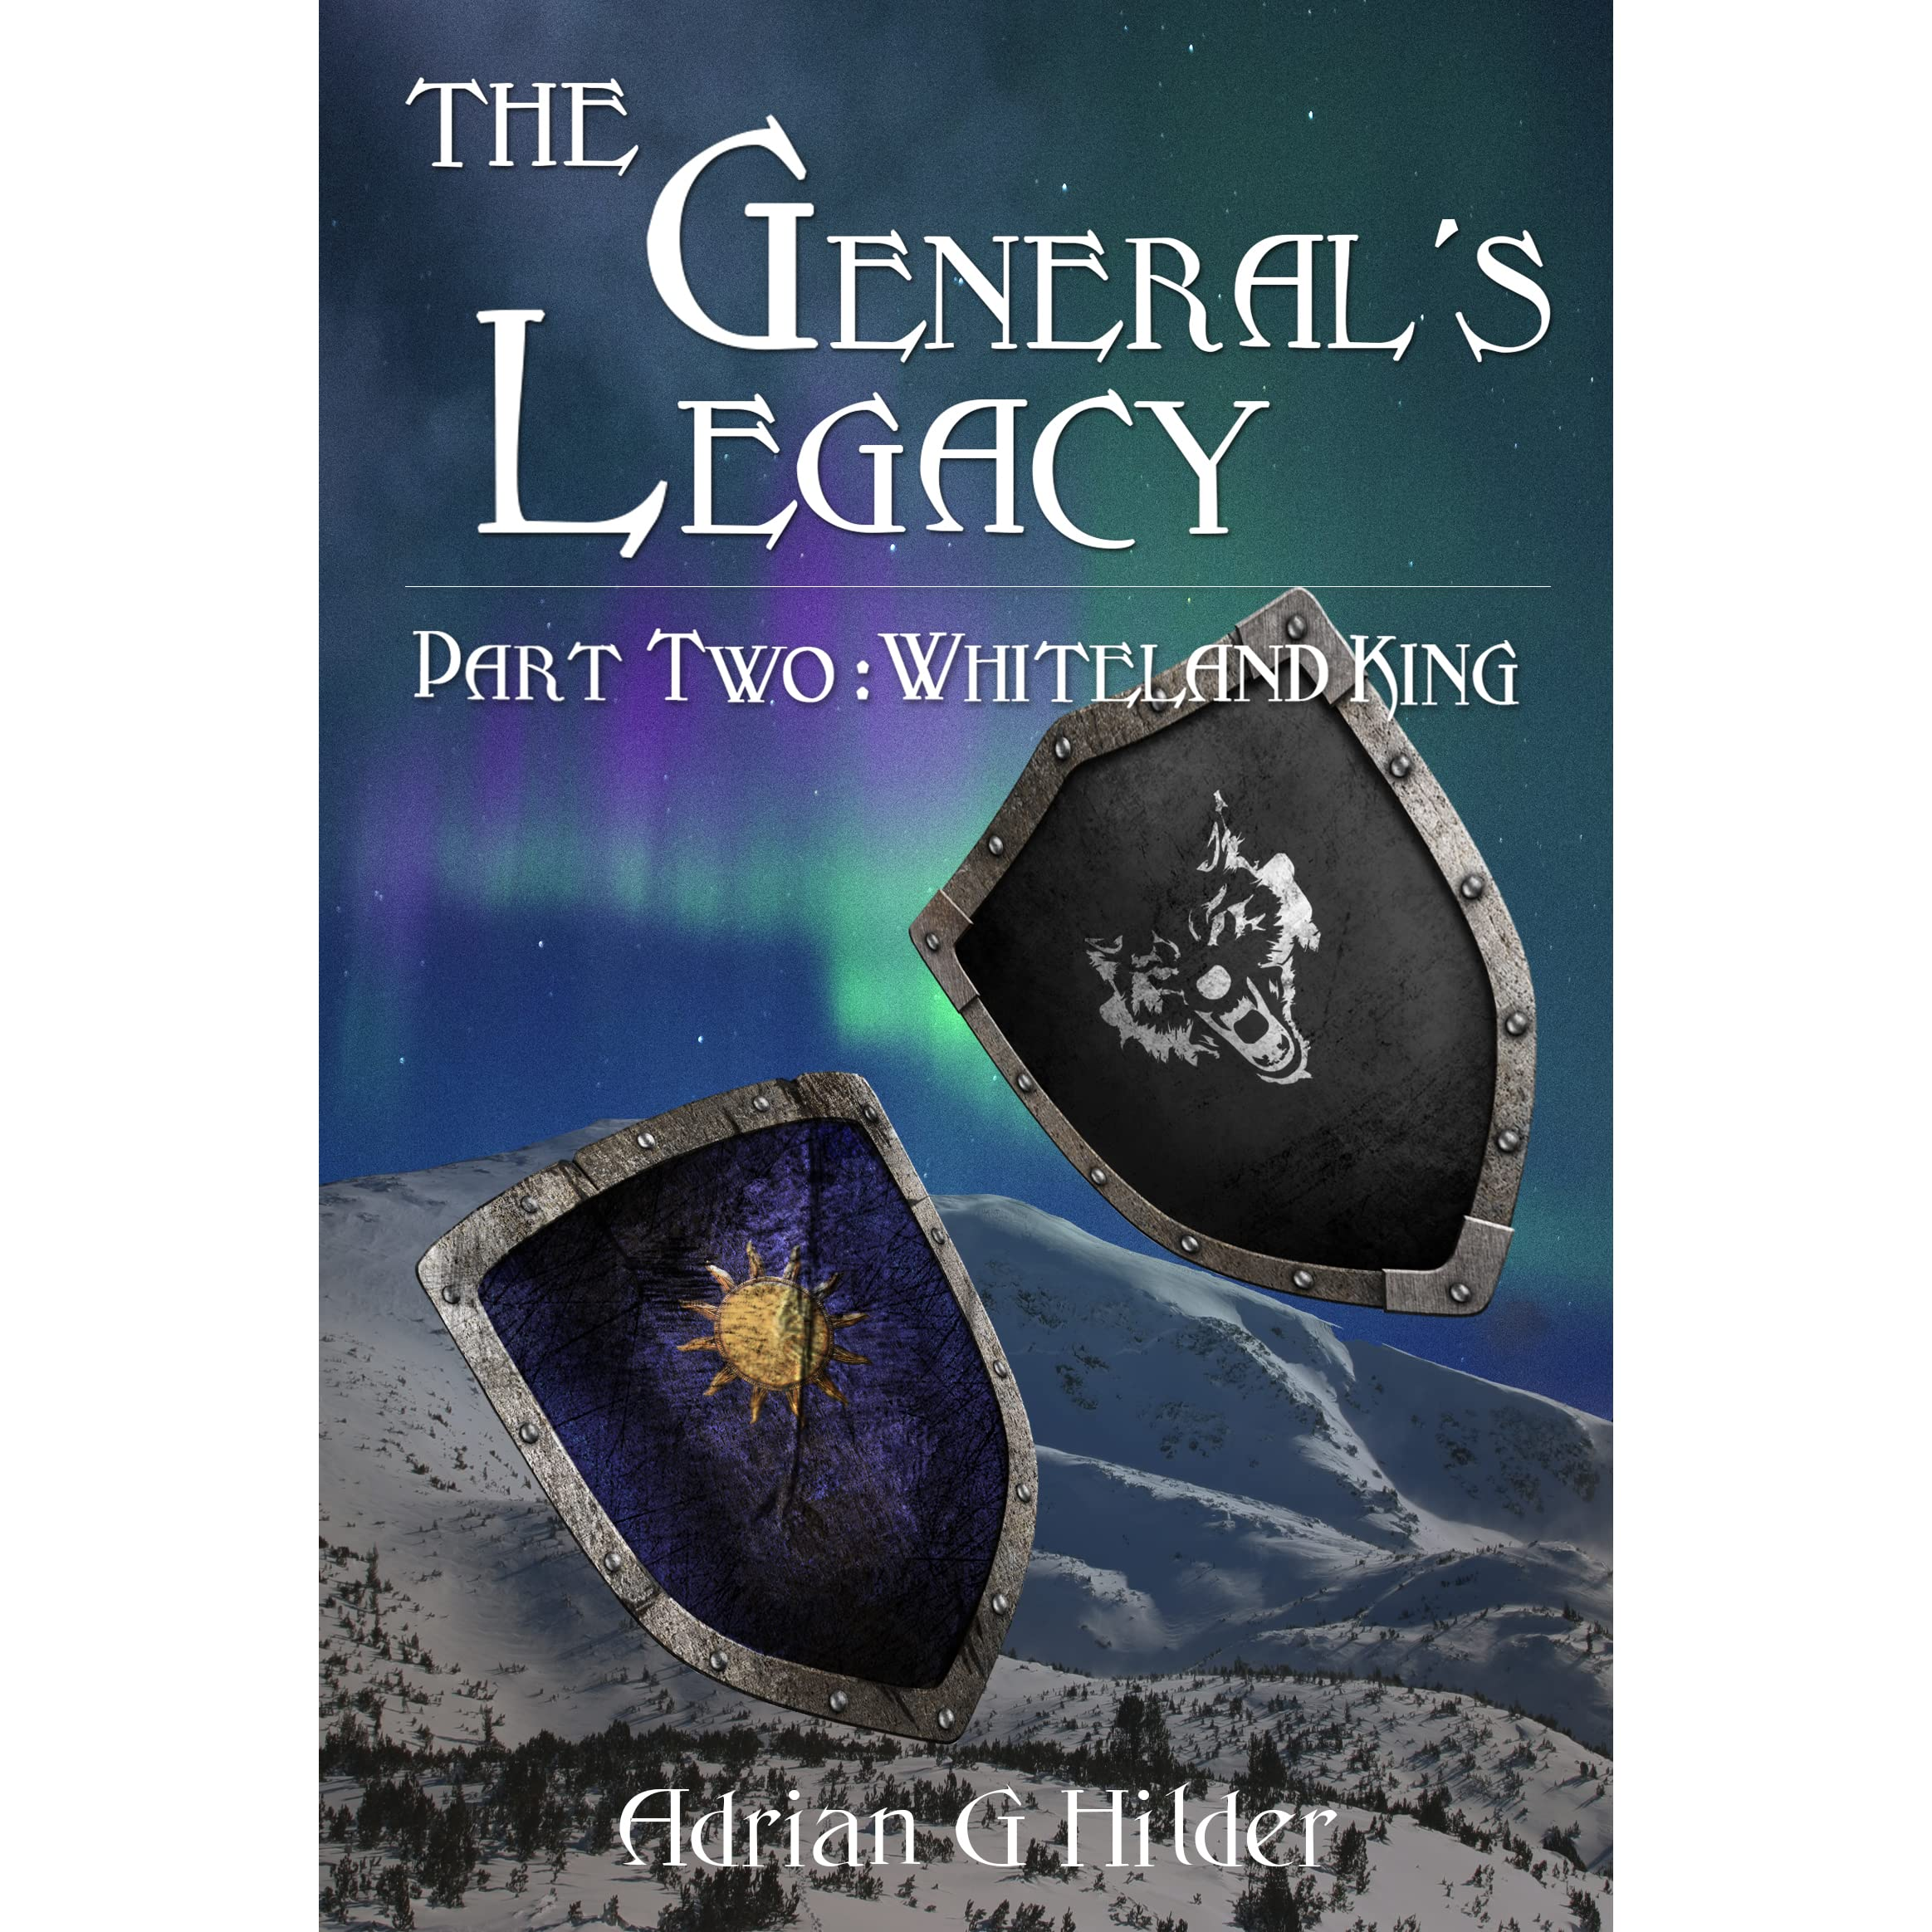 The General's Legacy Part 2: Whiteland King